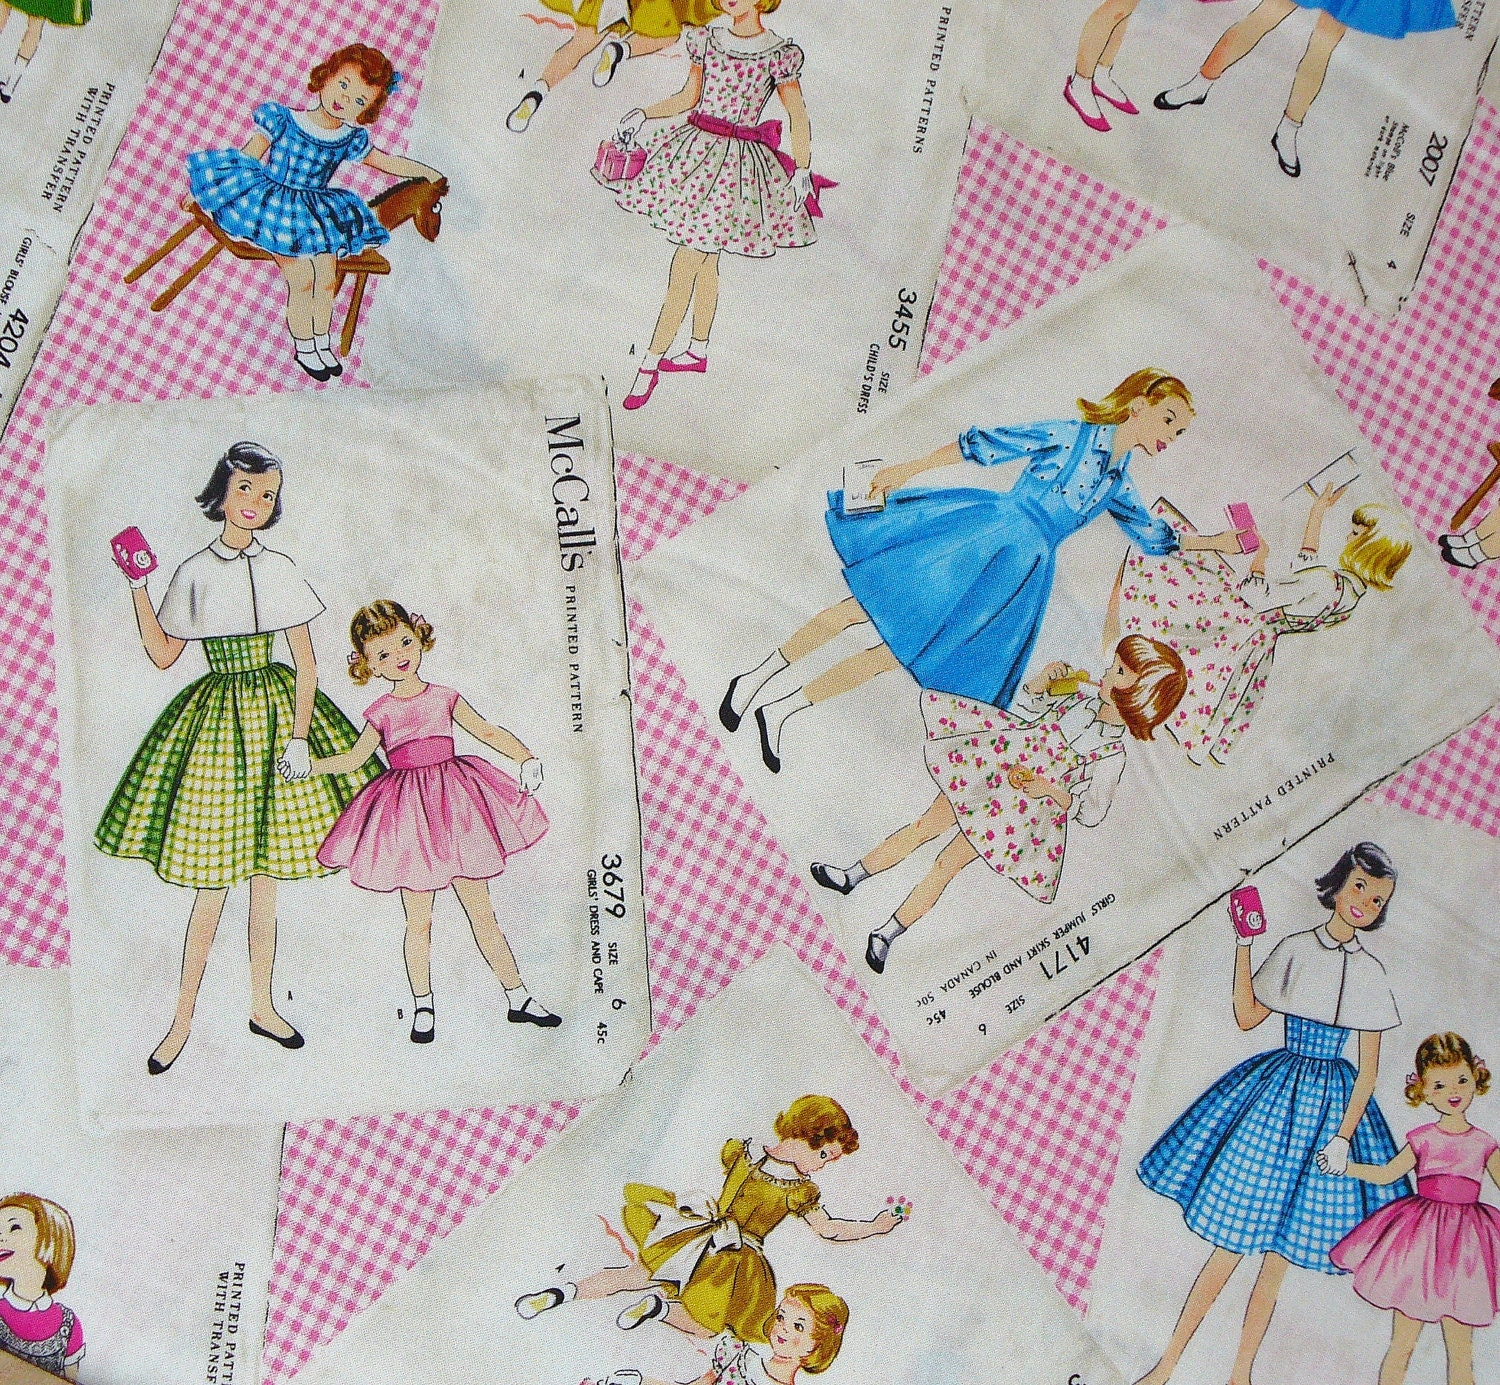 Mccalls vintage pattern fabric little girls new fabric for Vintage childrens fabric by the yard